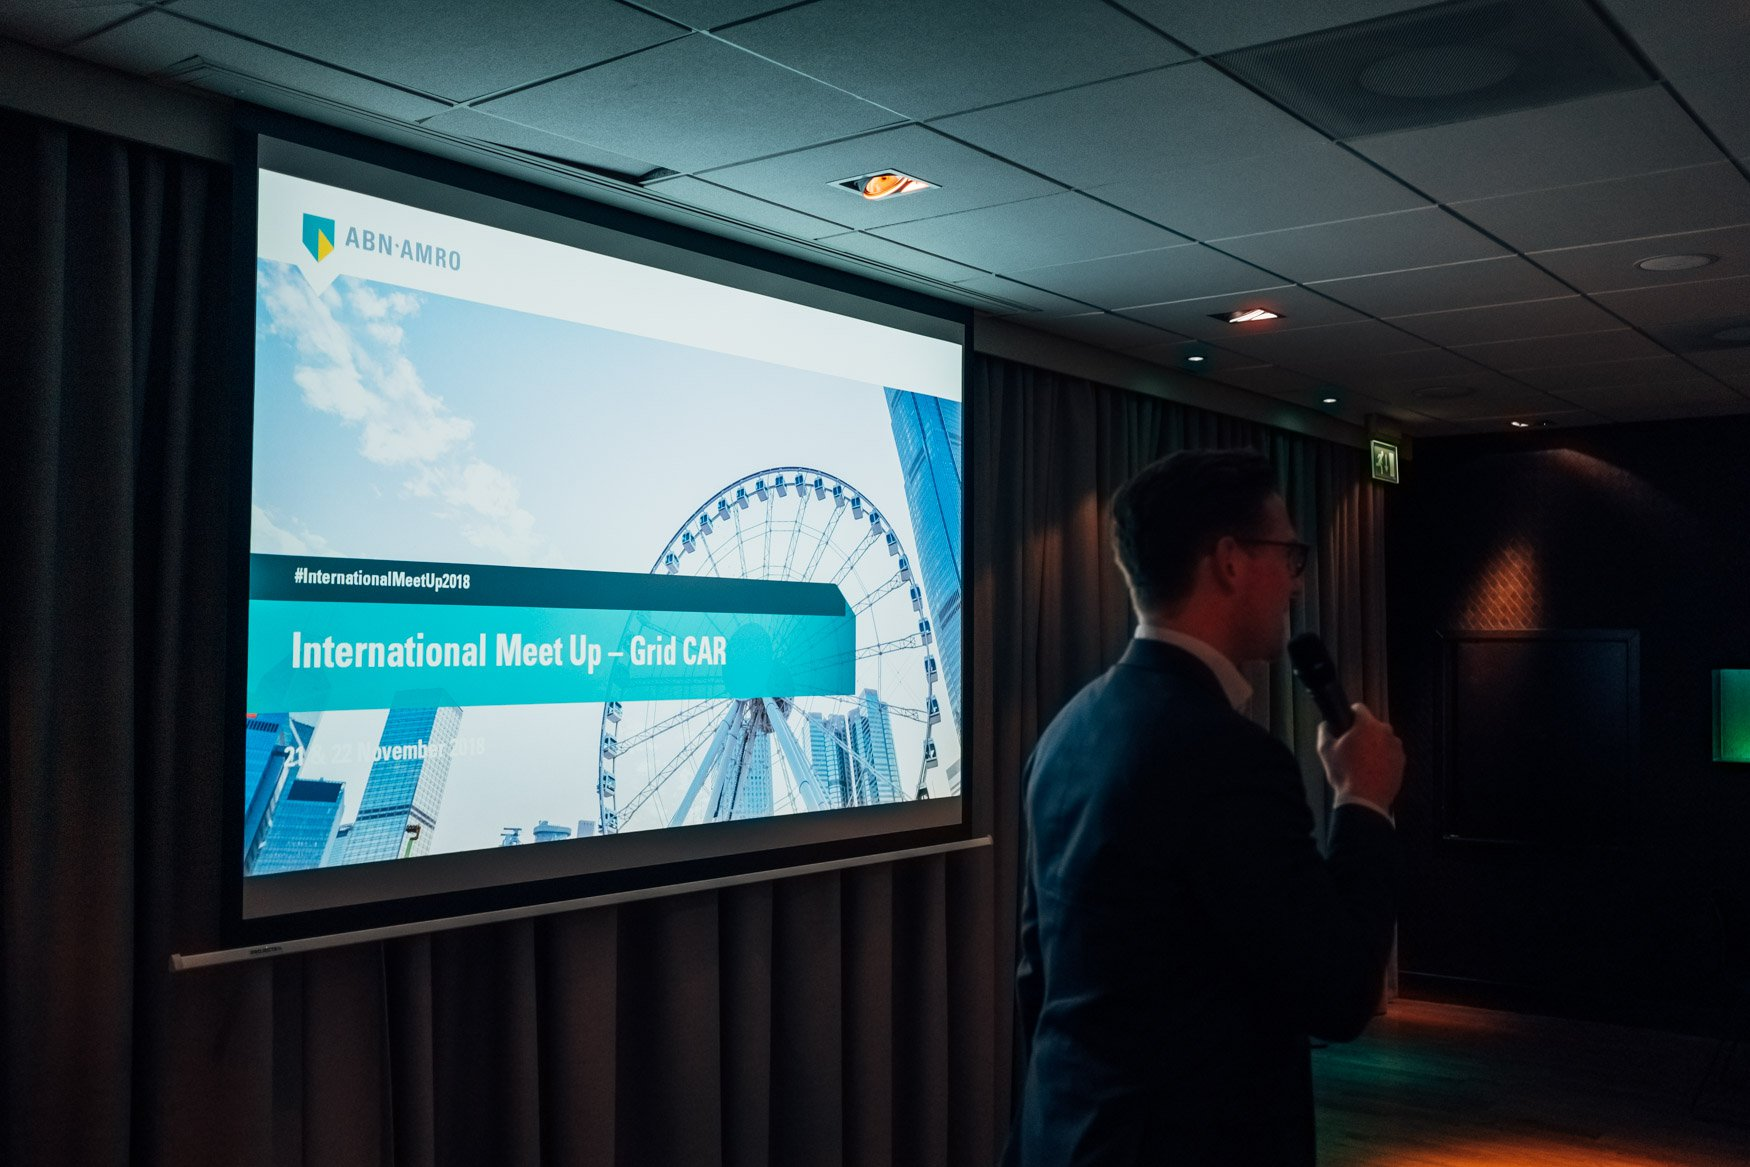 ABN AMRO - international meet up